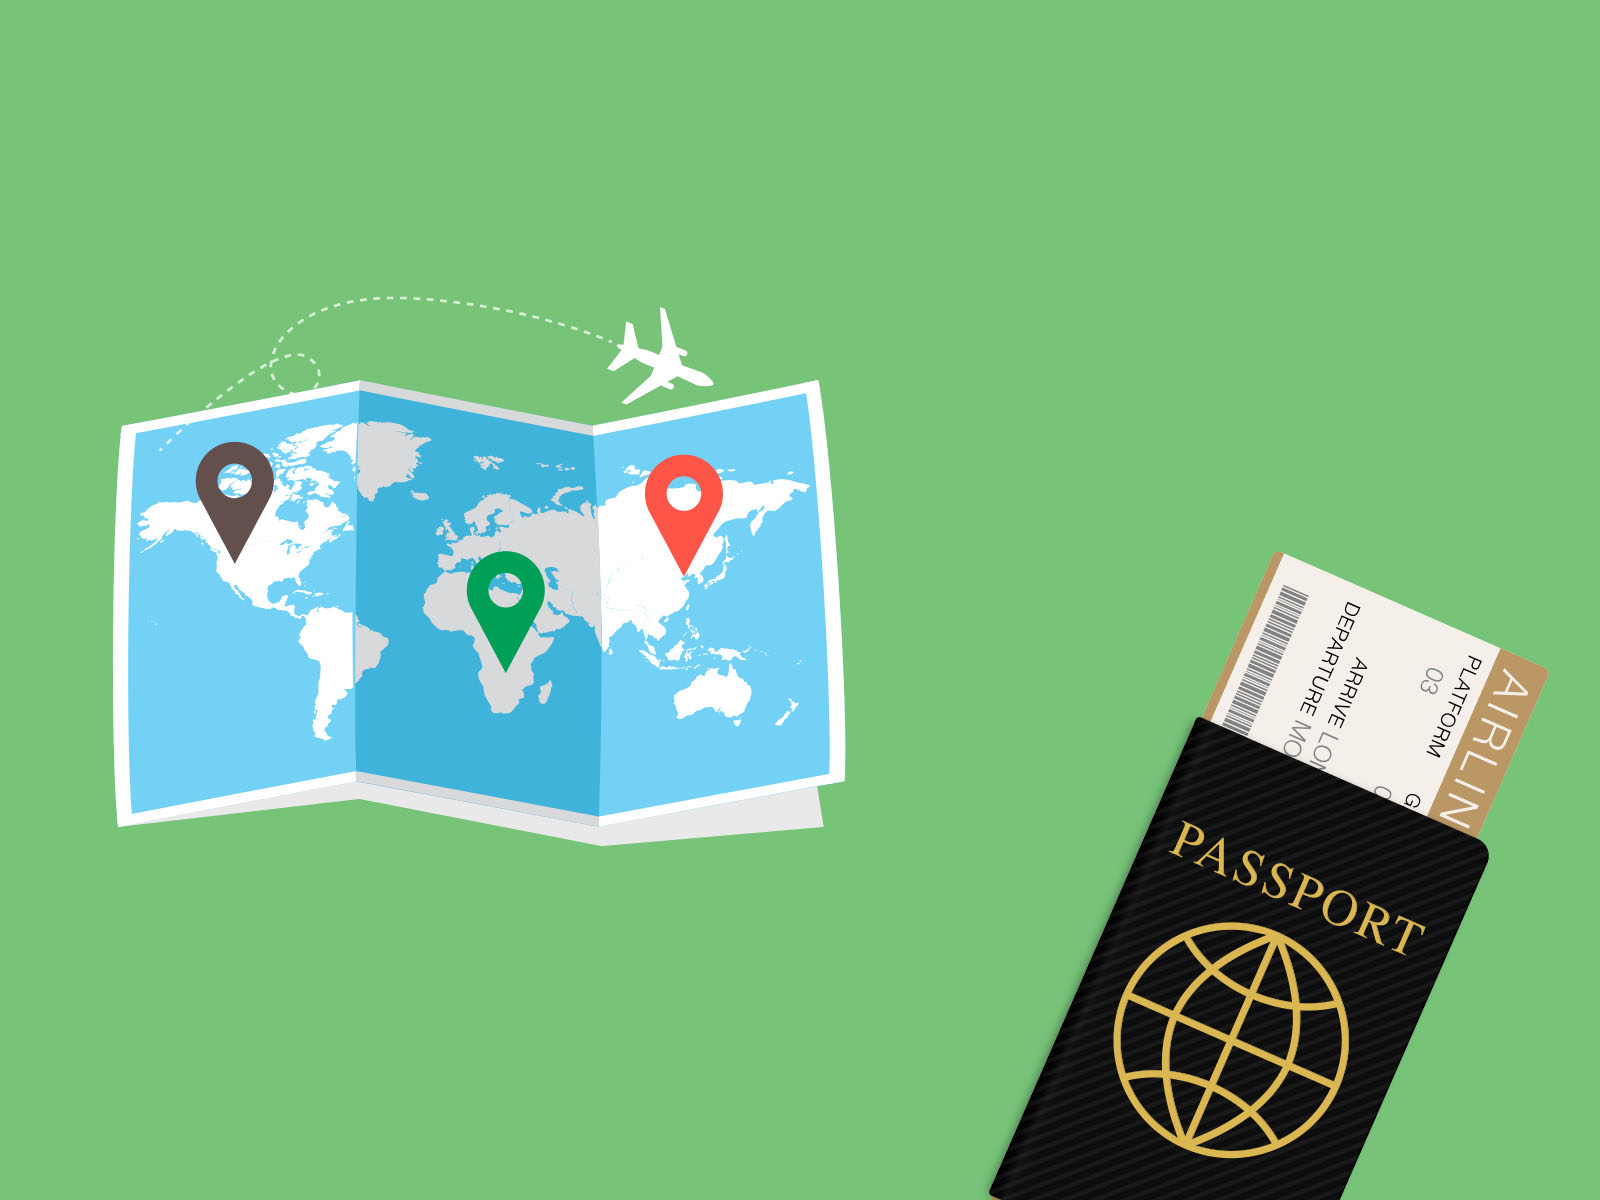 Passport and World Map PPT Backgrounds